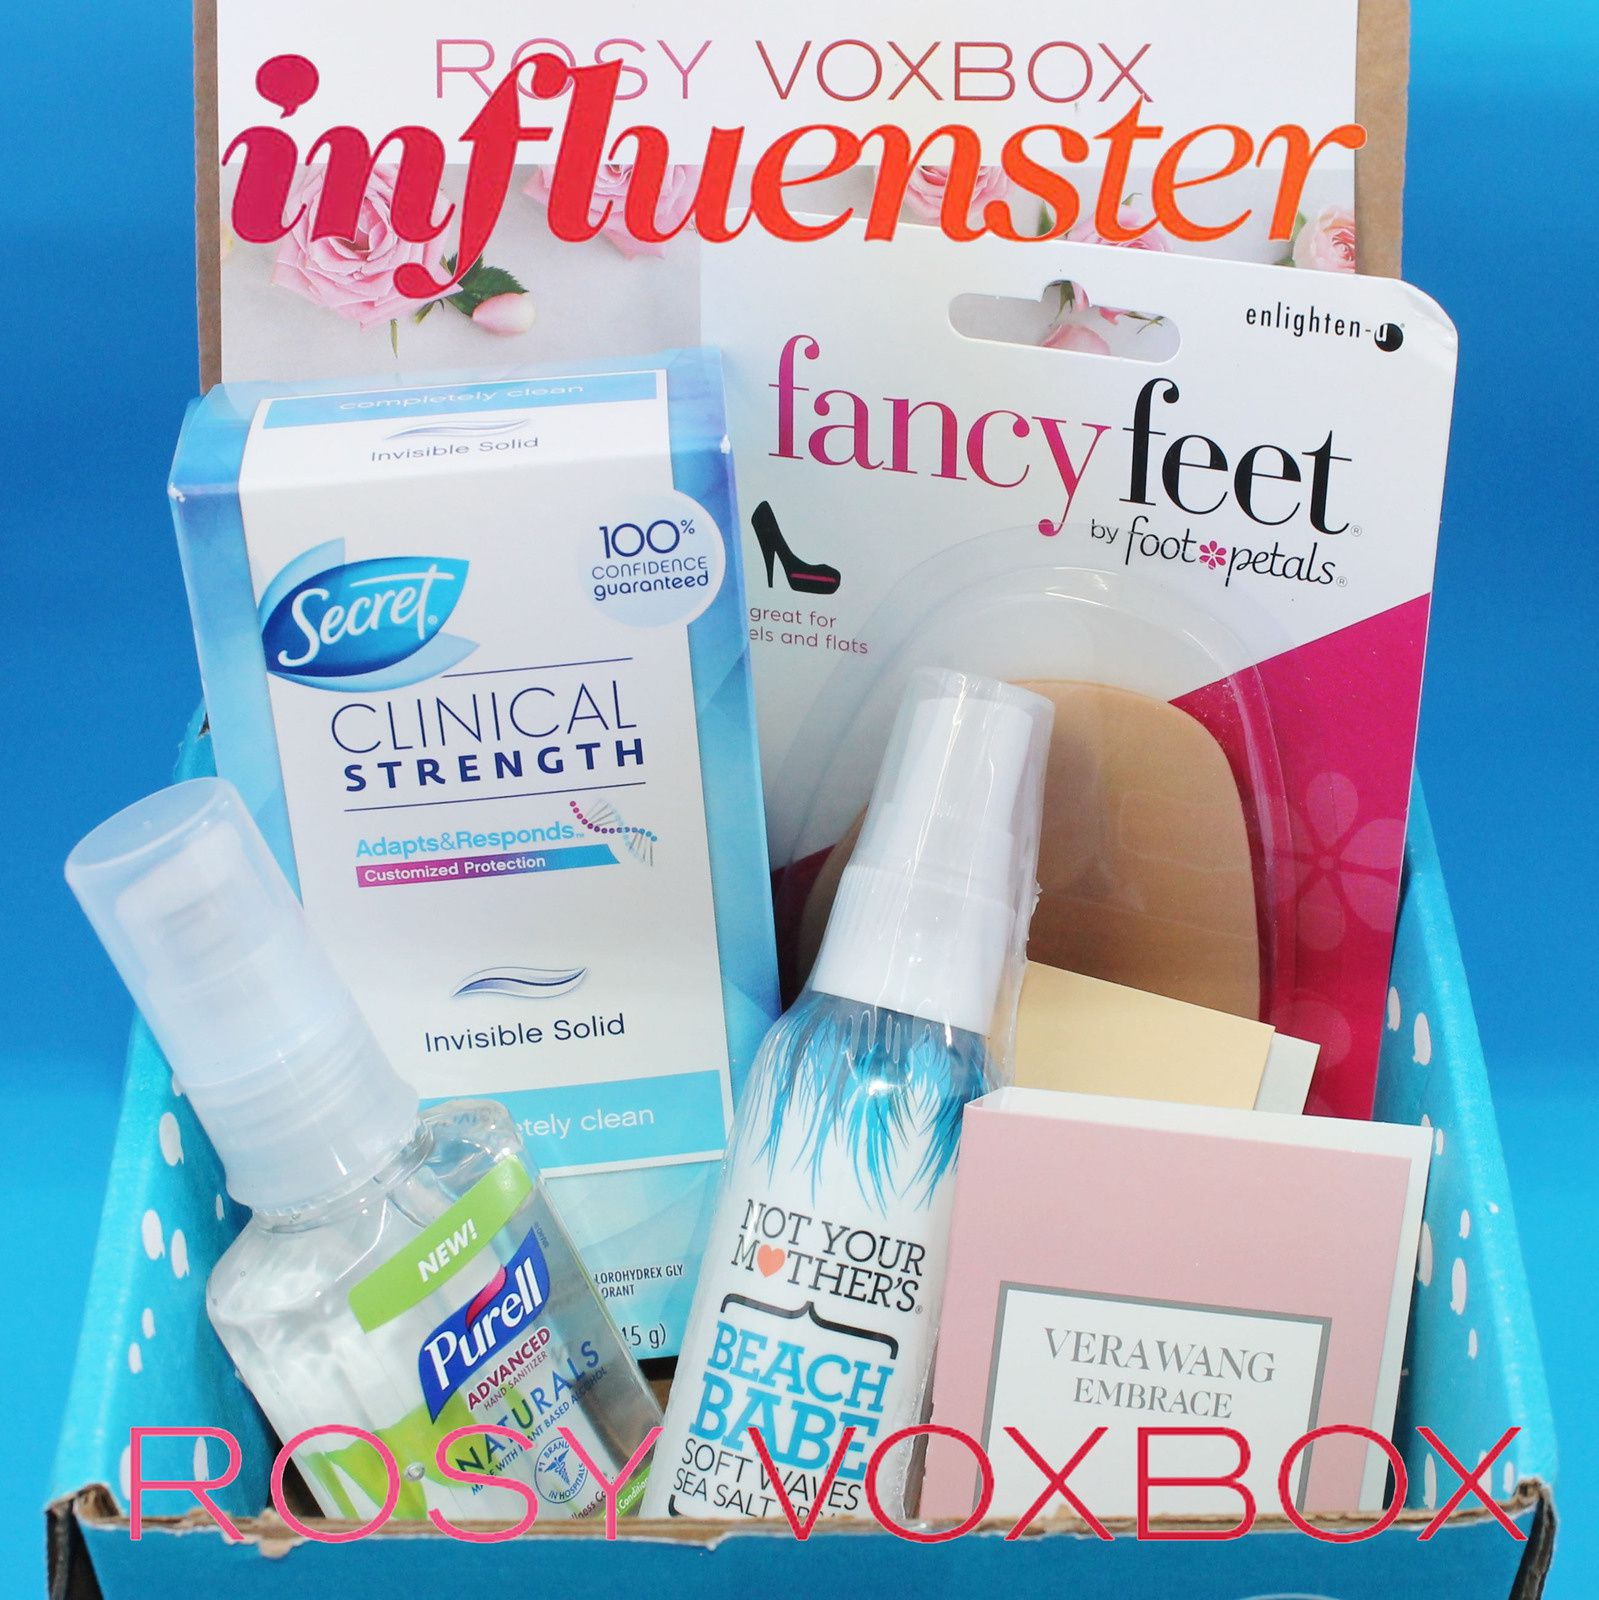 I received these products complimentary from Influenster for testing purposes.